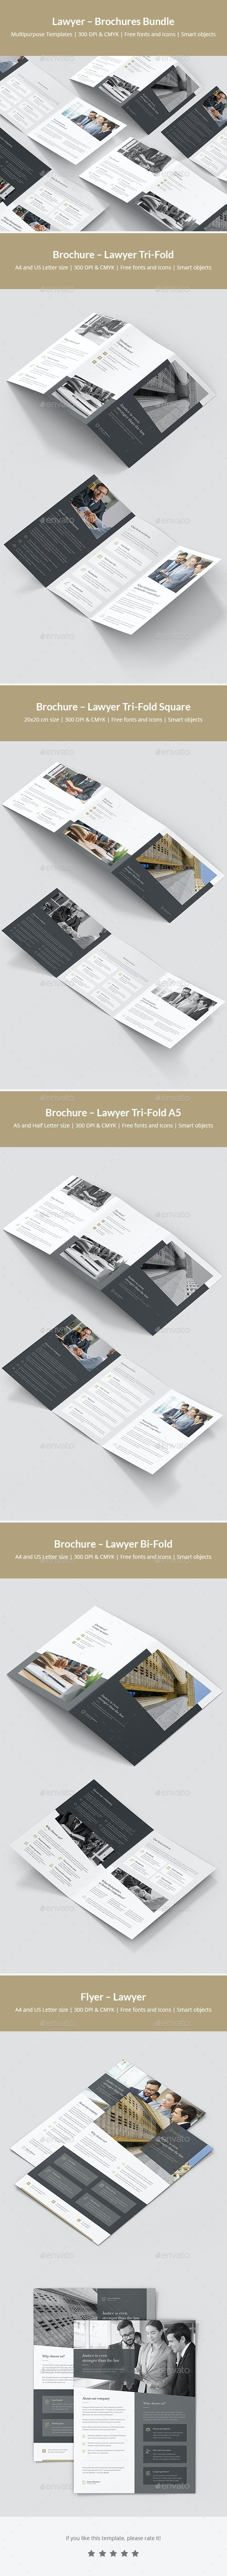 Lawyer – Brochures Bundle Print Templates 5 in 1 - Corporate Brochures